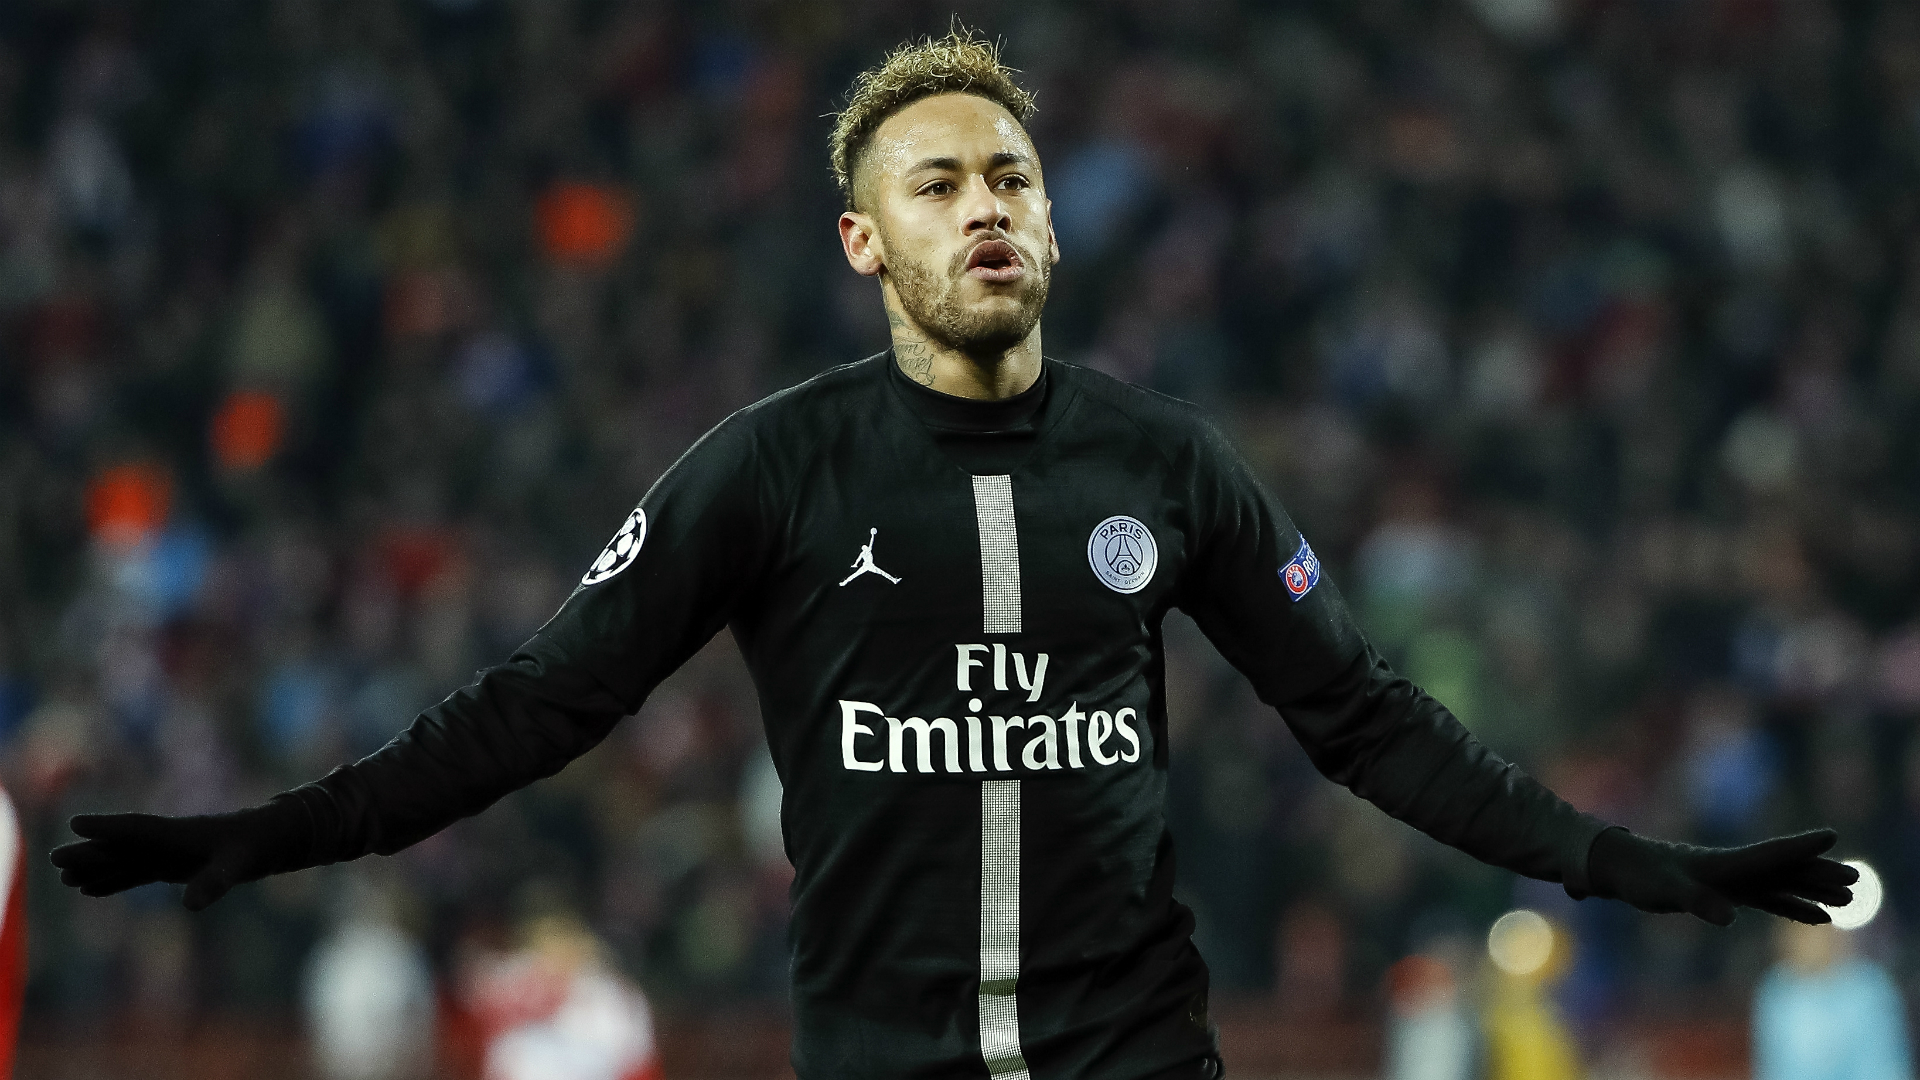 Neymar: PSG will win the Champions League